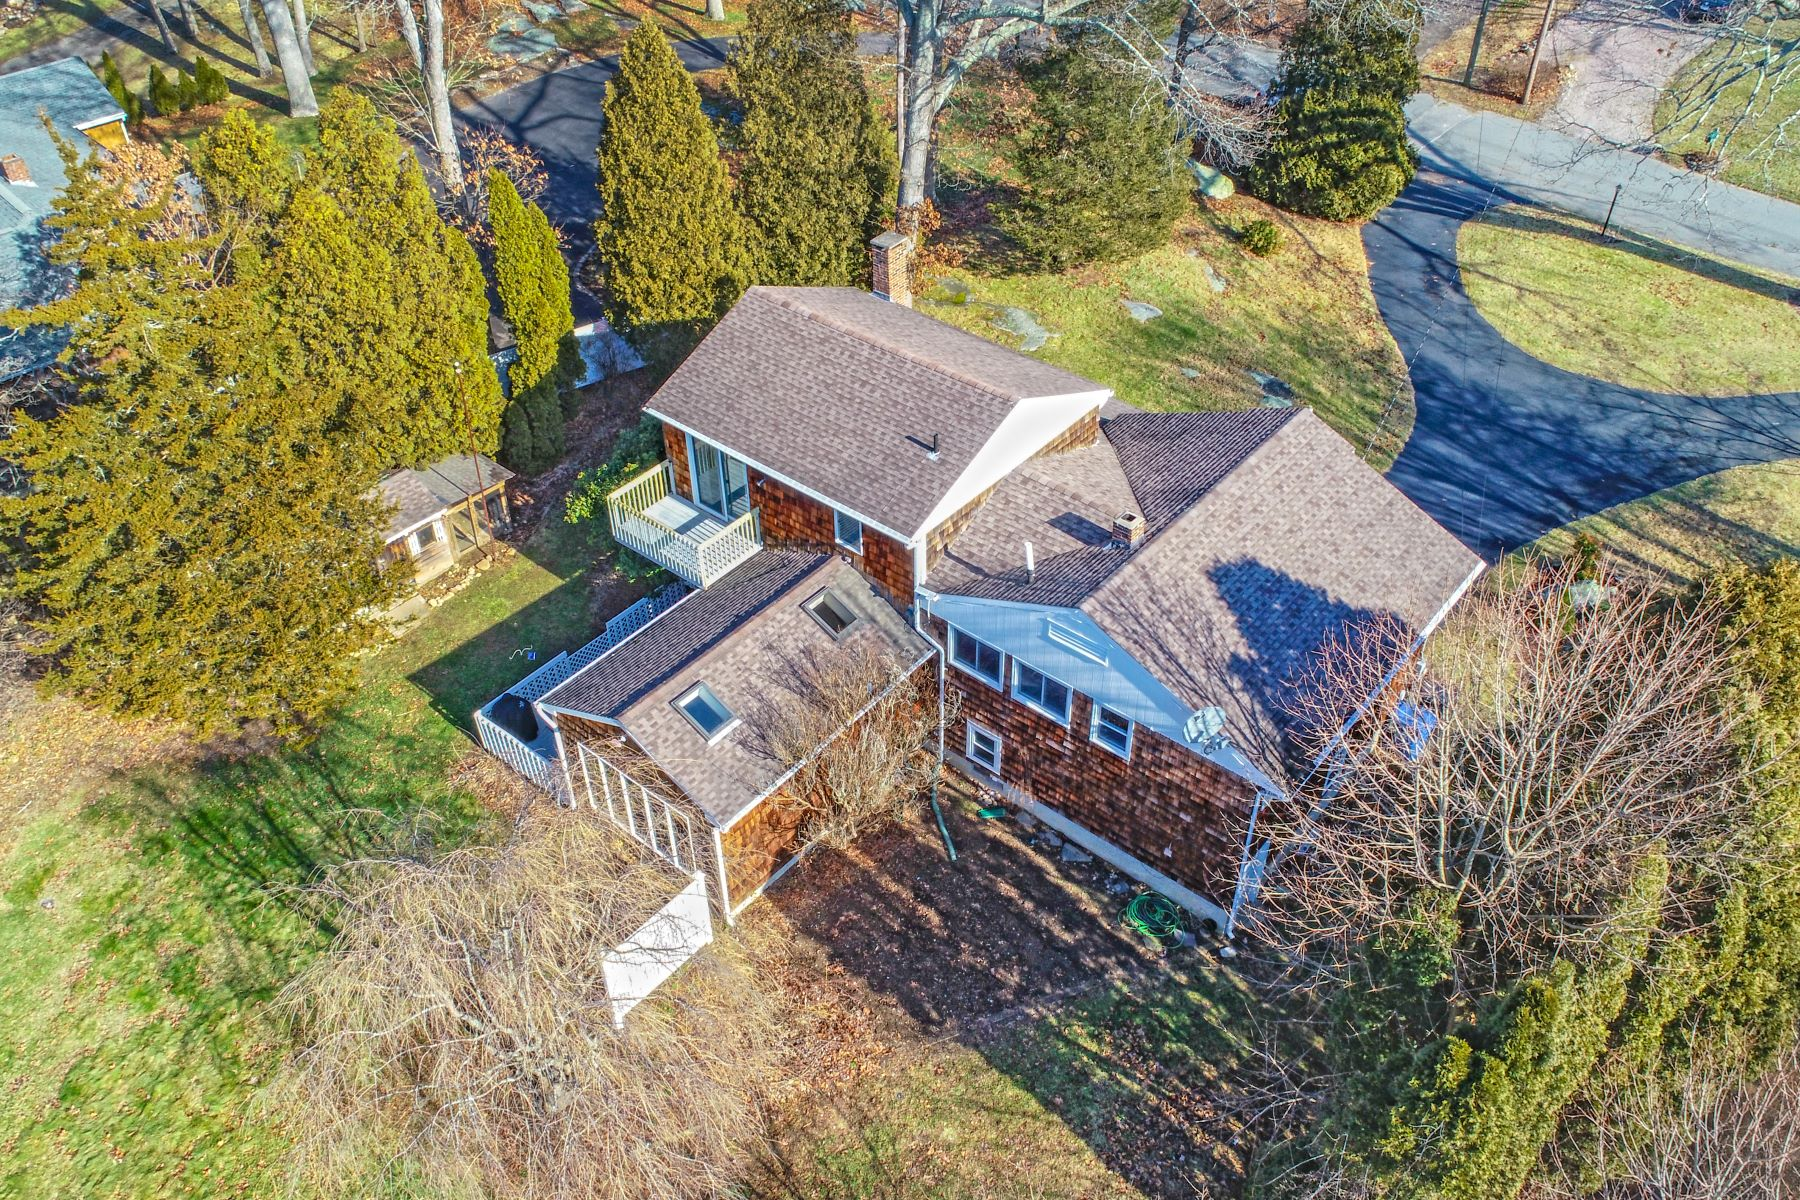 Single Family Homes for Sale at 47 Harvard Terrace Ledyard, Connecticut 06335 United States